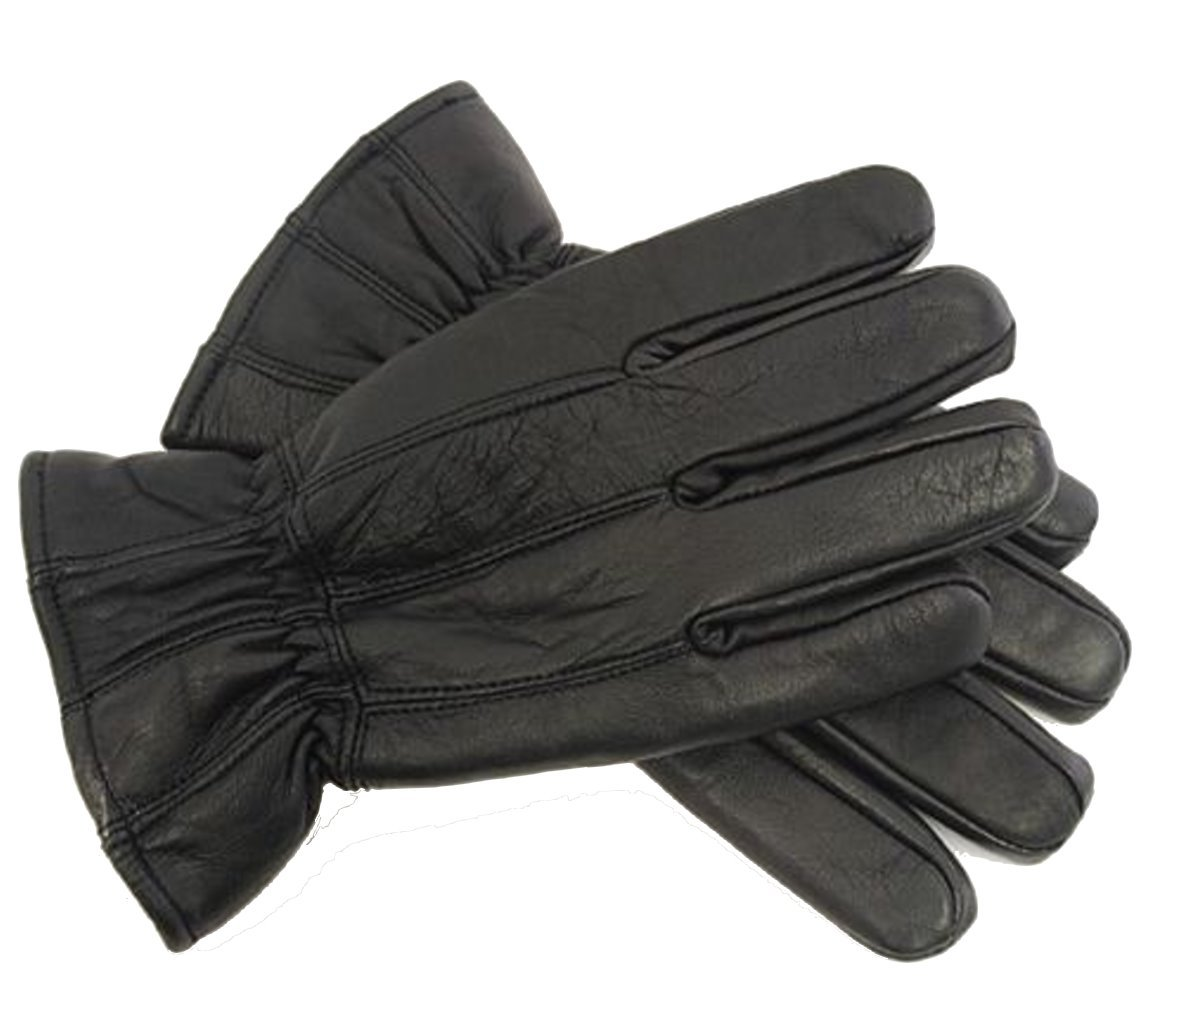 Mens leather gloves online india - Mens Leather Gloves Black Brown Available Black M L Amazon Co Uk Sports Outdoors